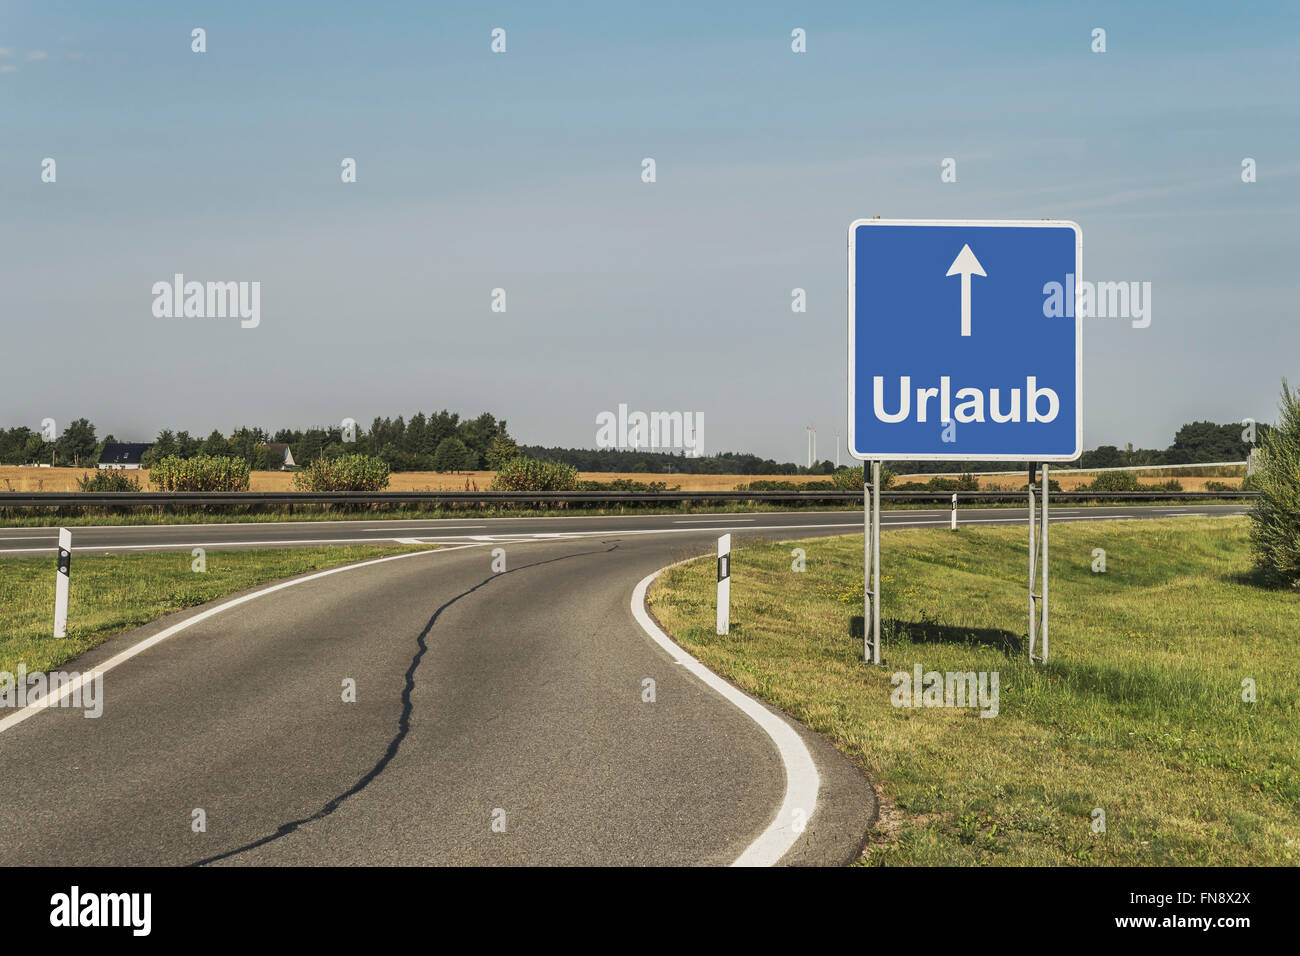 Road Sign with the German title Urlaub (holiday) on the German Highway (Autobahn), Germany, Europe - Stock Image